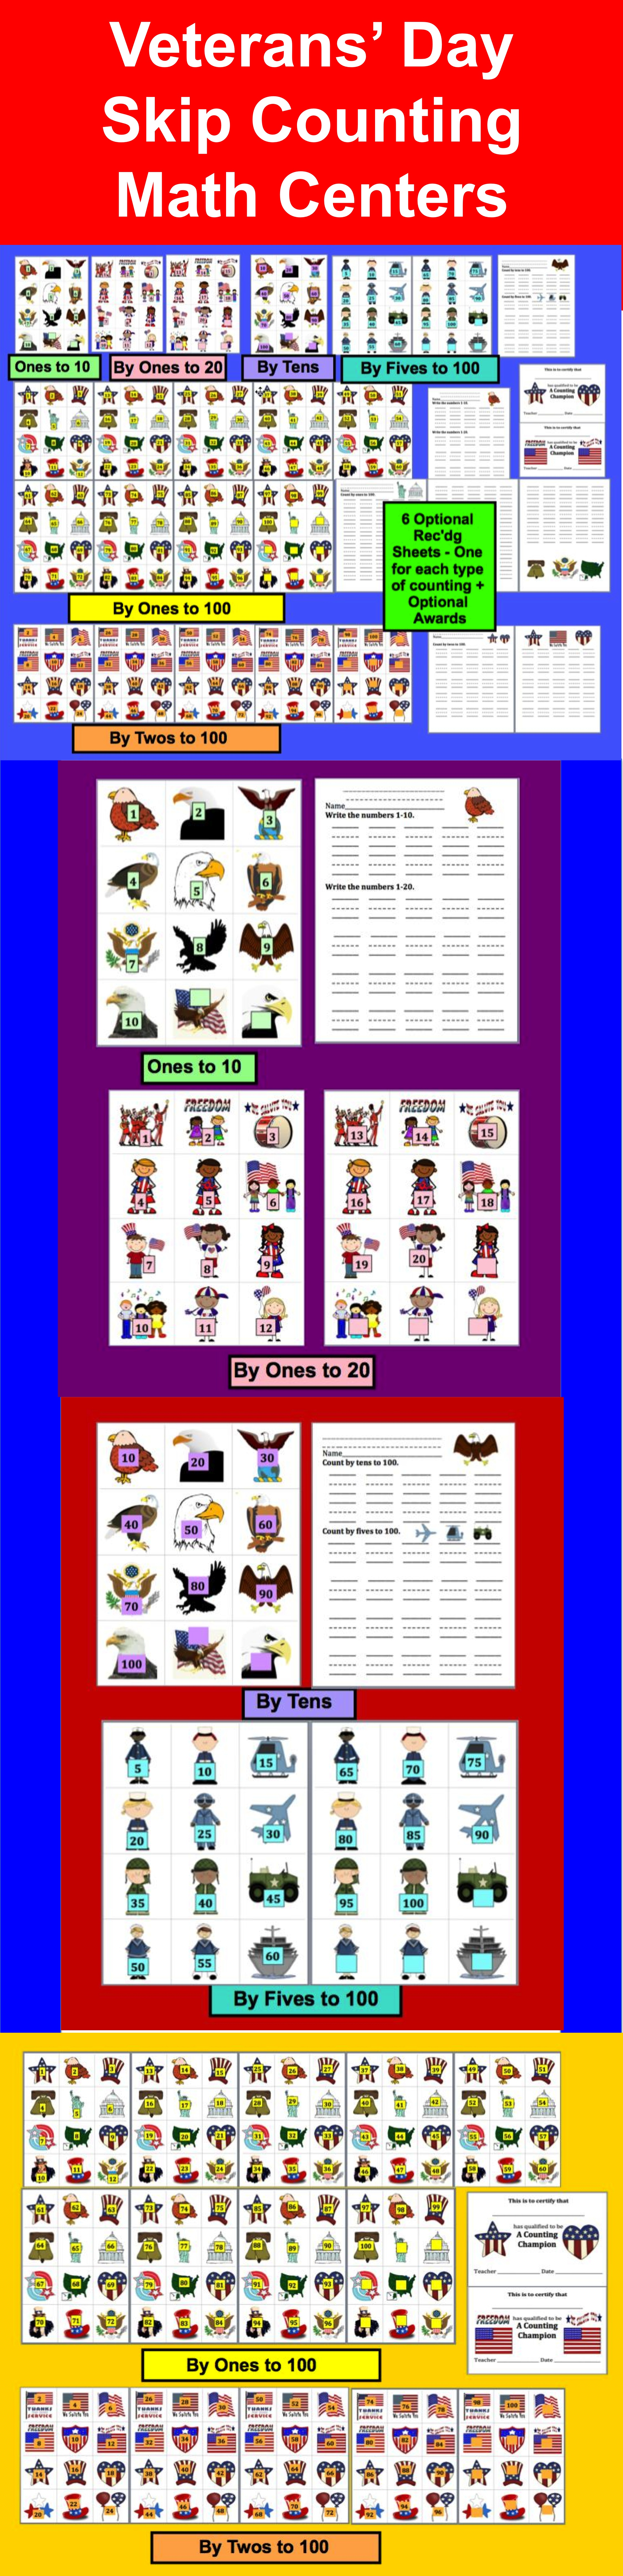 Veterans Day Math Centers Patriotic Counting Amp Skip